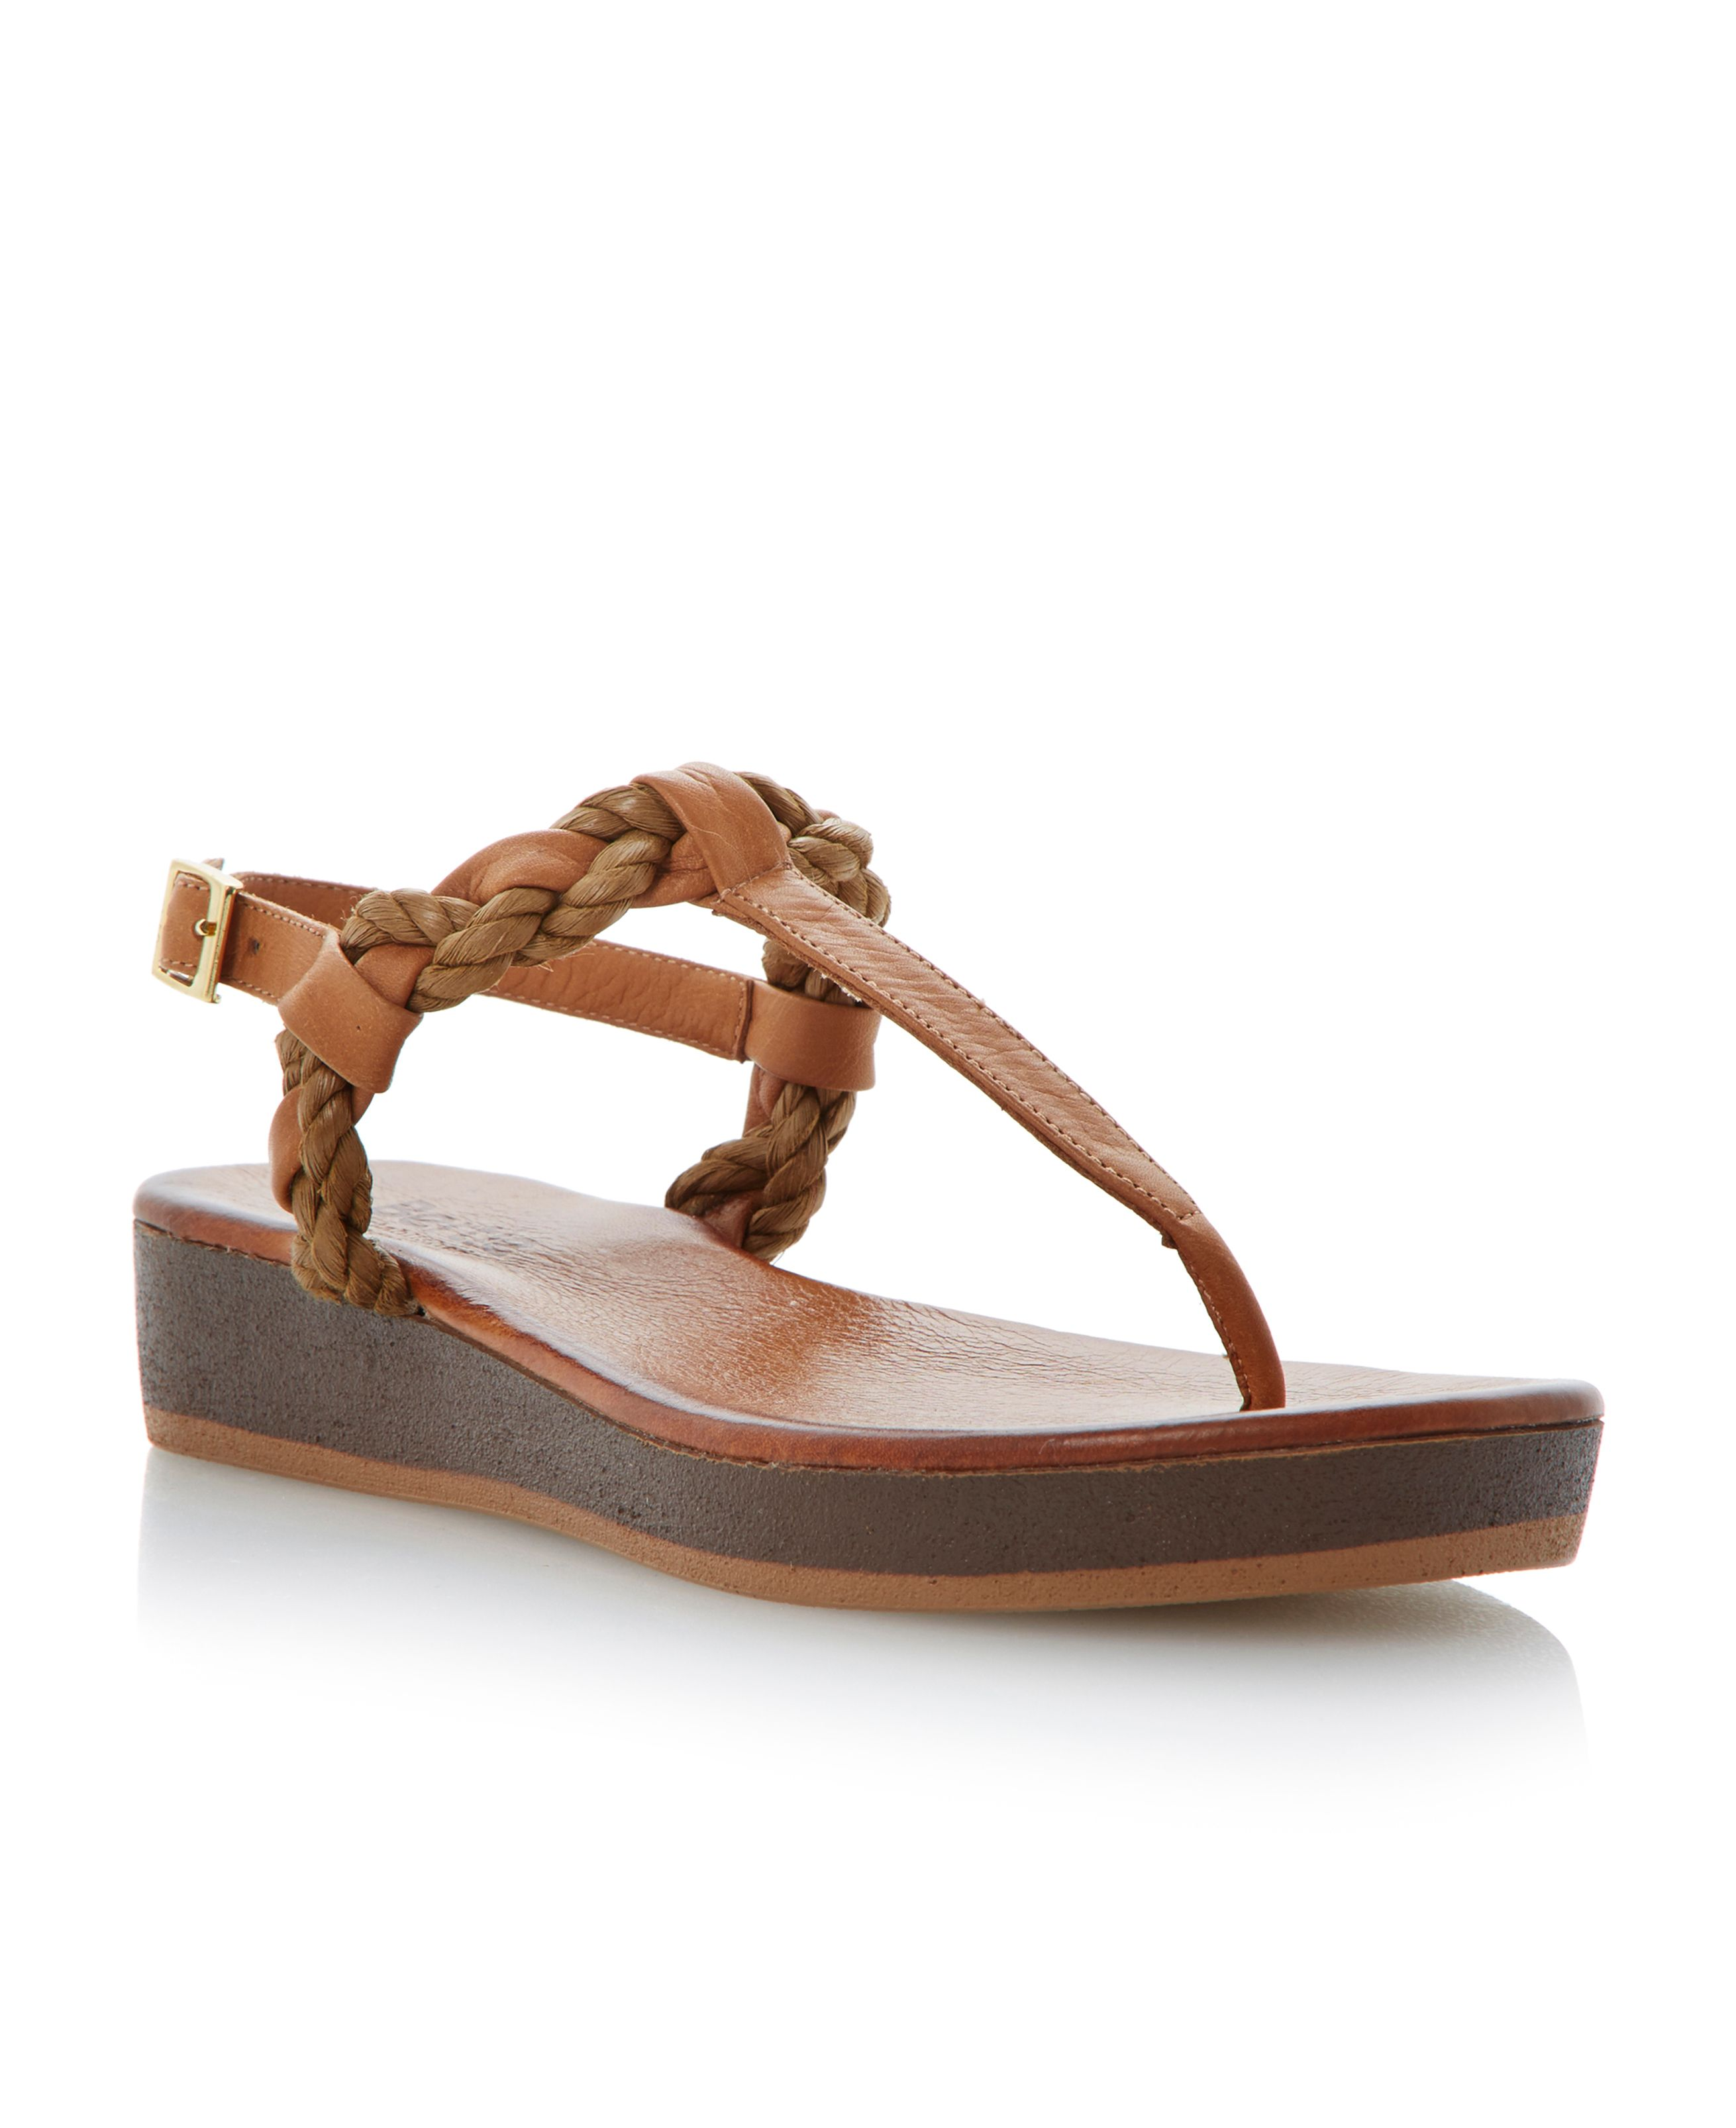 Jar leather platform buckle sandals